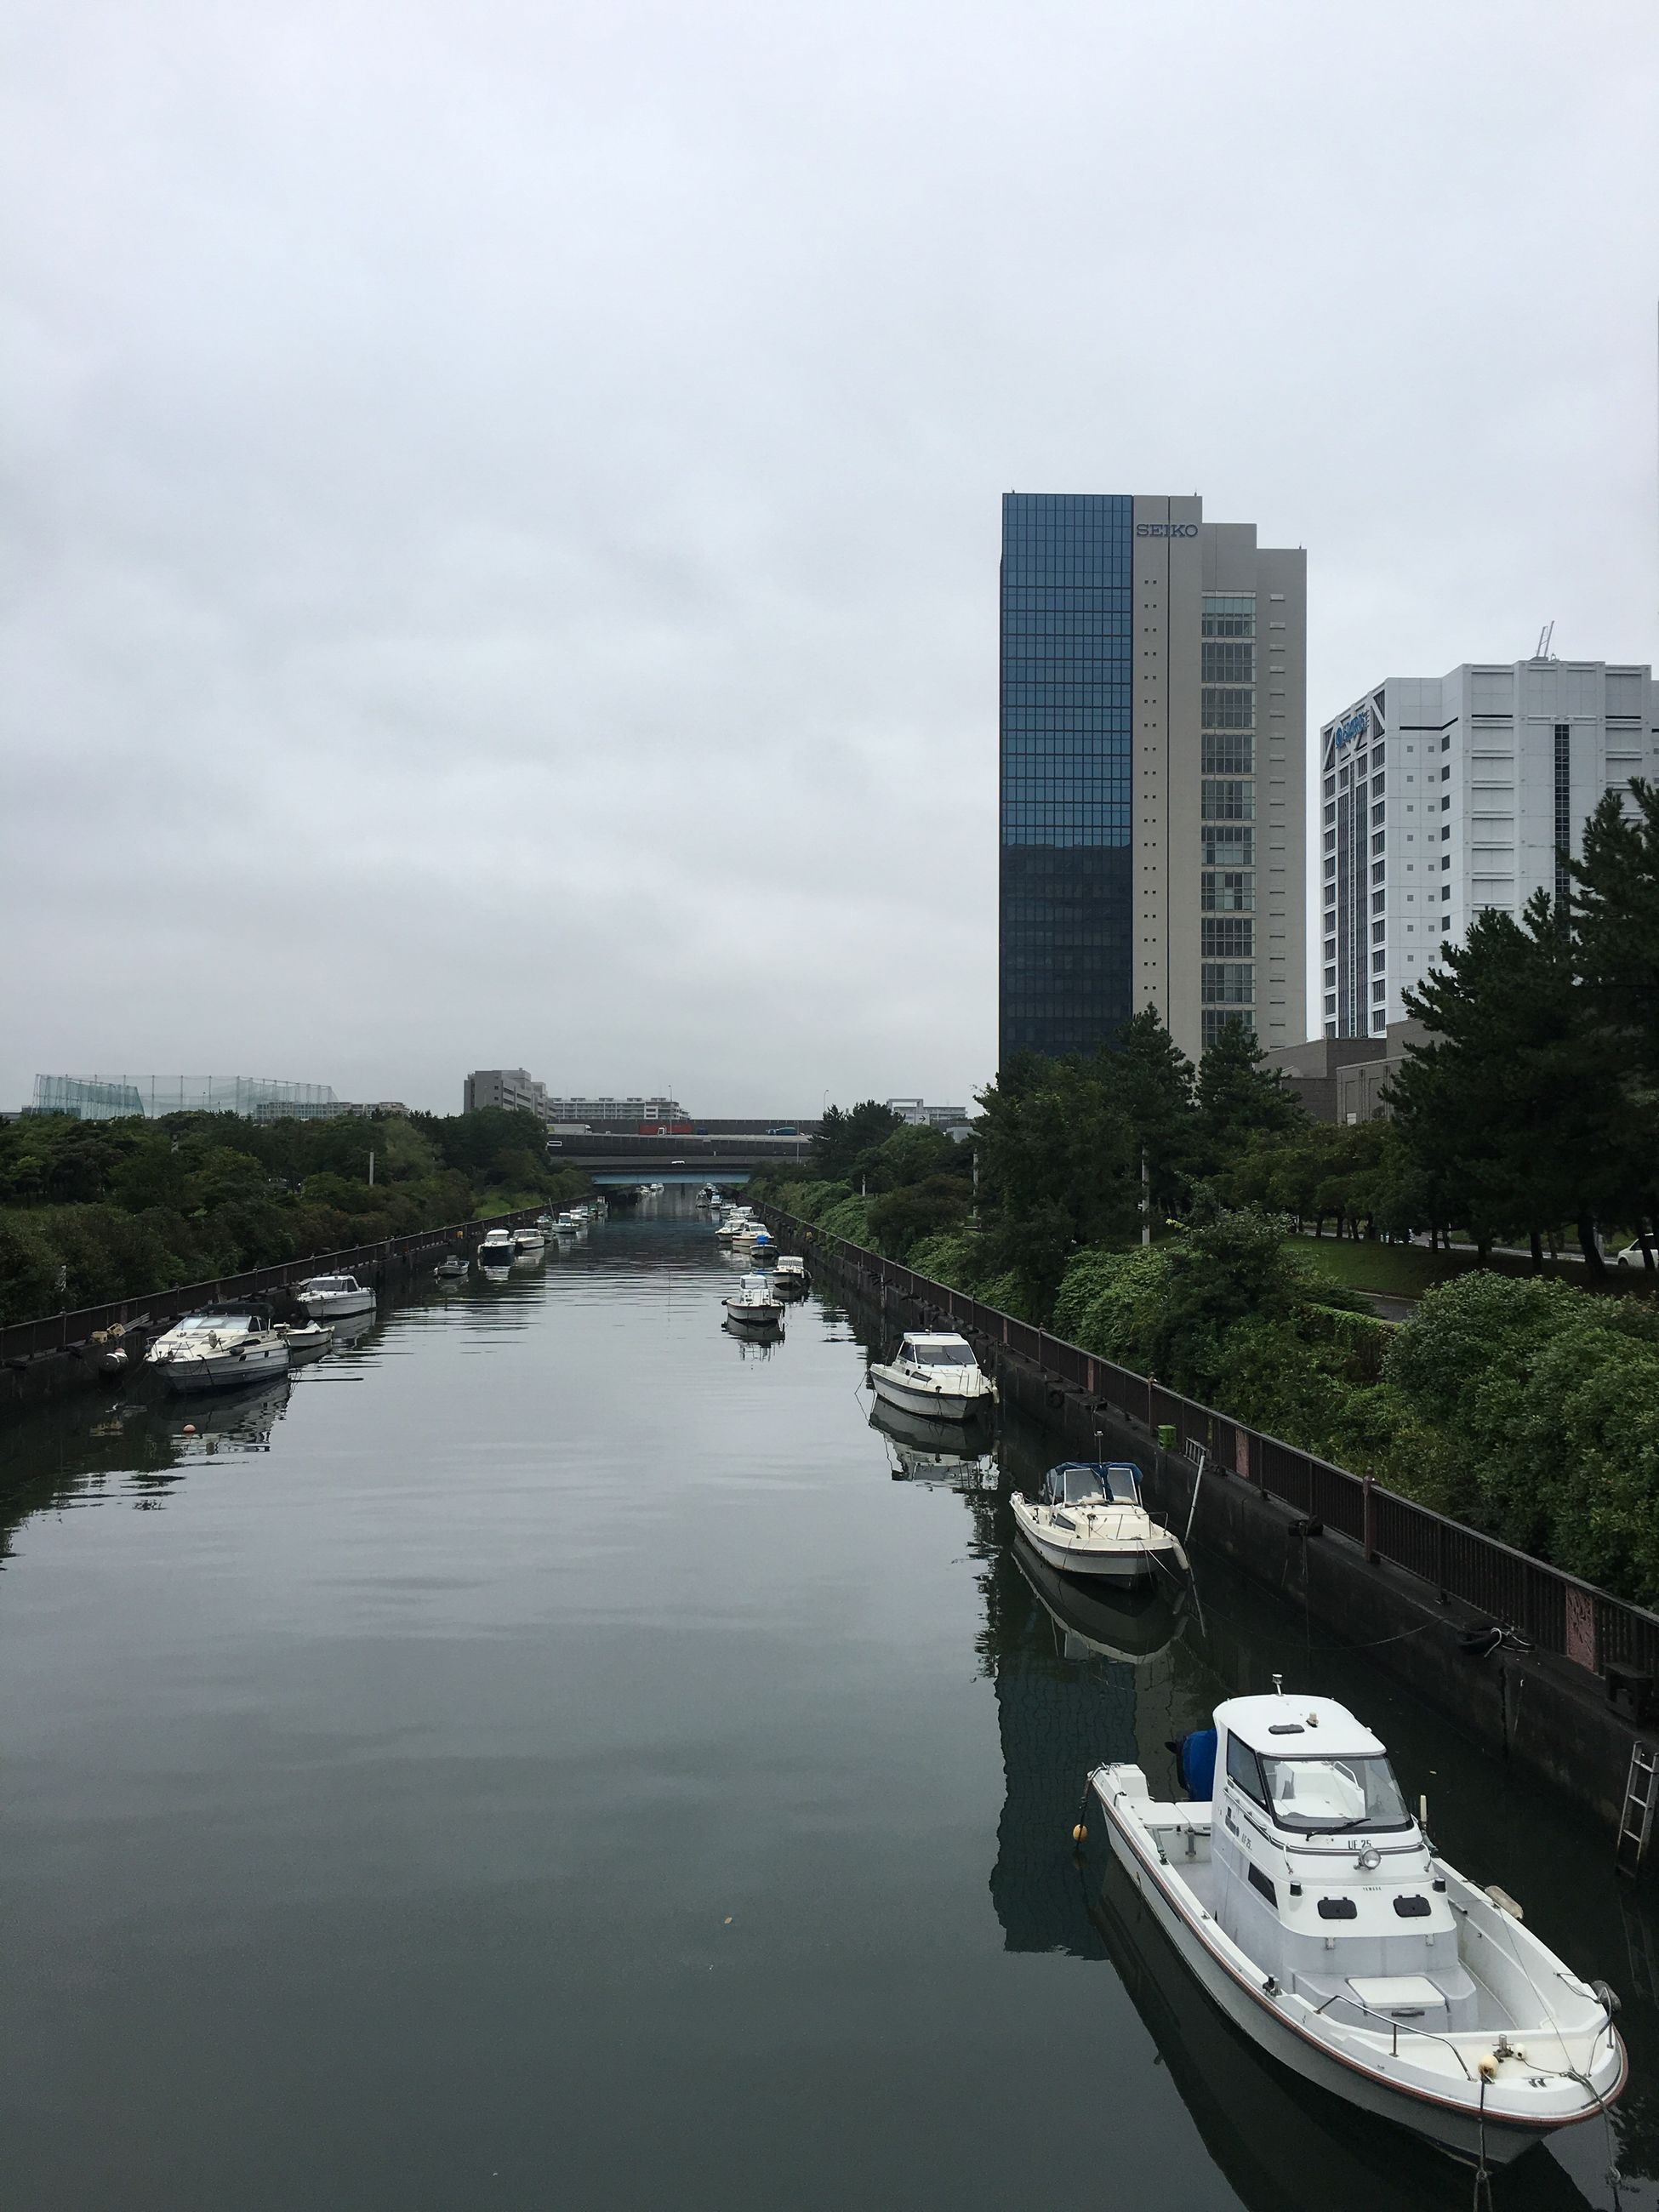 building exterior, architecture, built structure, water, city, transportation, nautical vessel, sky, reflection, mode of transport, waterfront, river, canal, travel destinations, skyscraper, office building, cloud, cloud - sky, modern, city life, day, outdoors, development, building story, no people